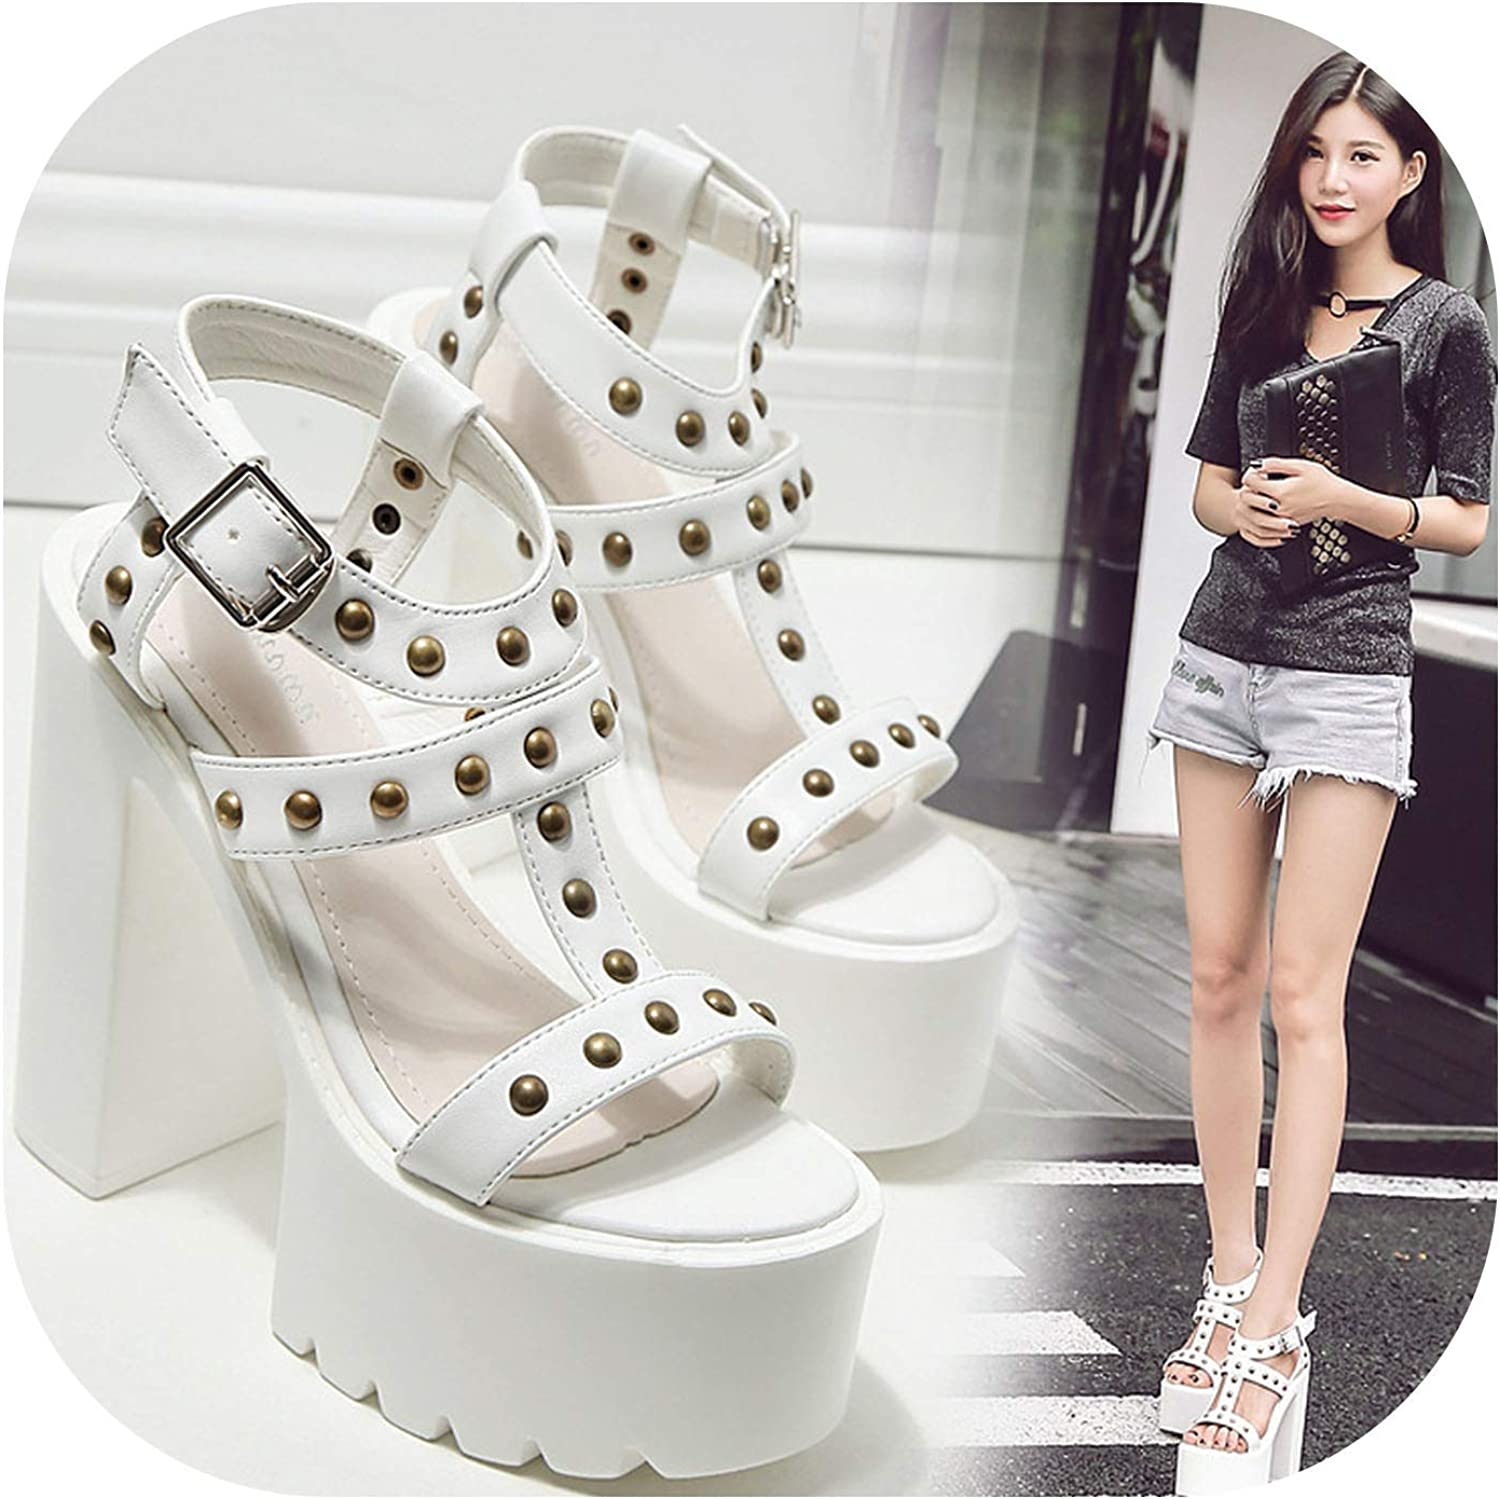 Pink-star 2019 Women Platform Thick Heels Rivets Sandals Fashion Rivets Thick with Hollow High Heel Sandals